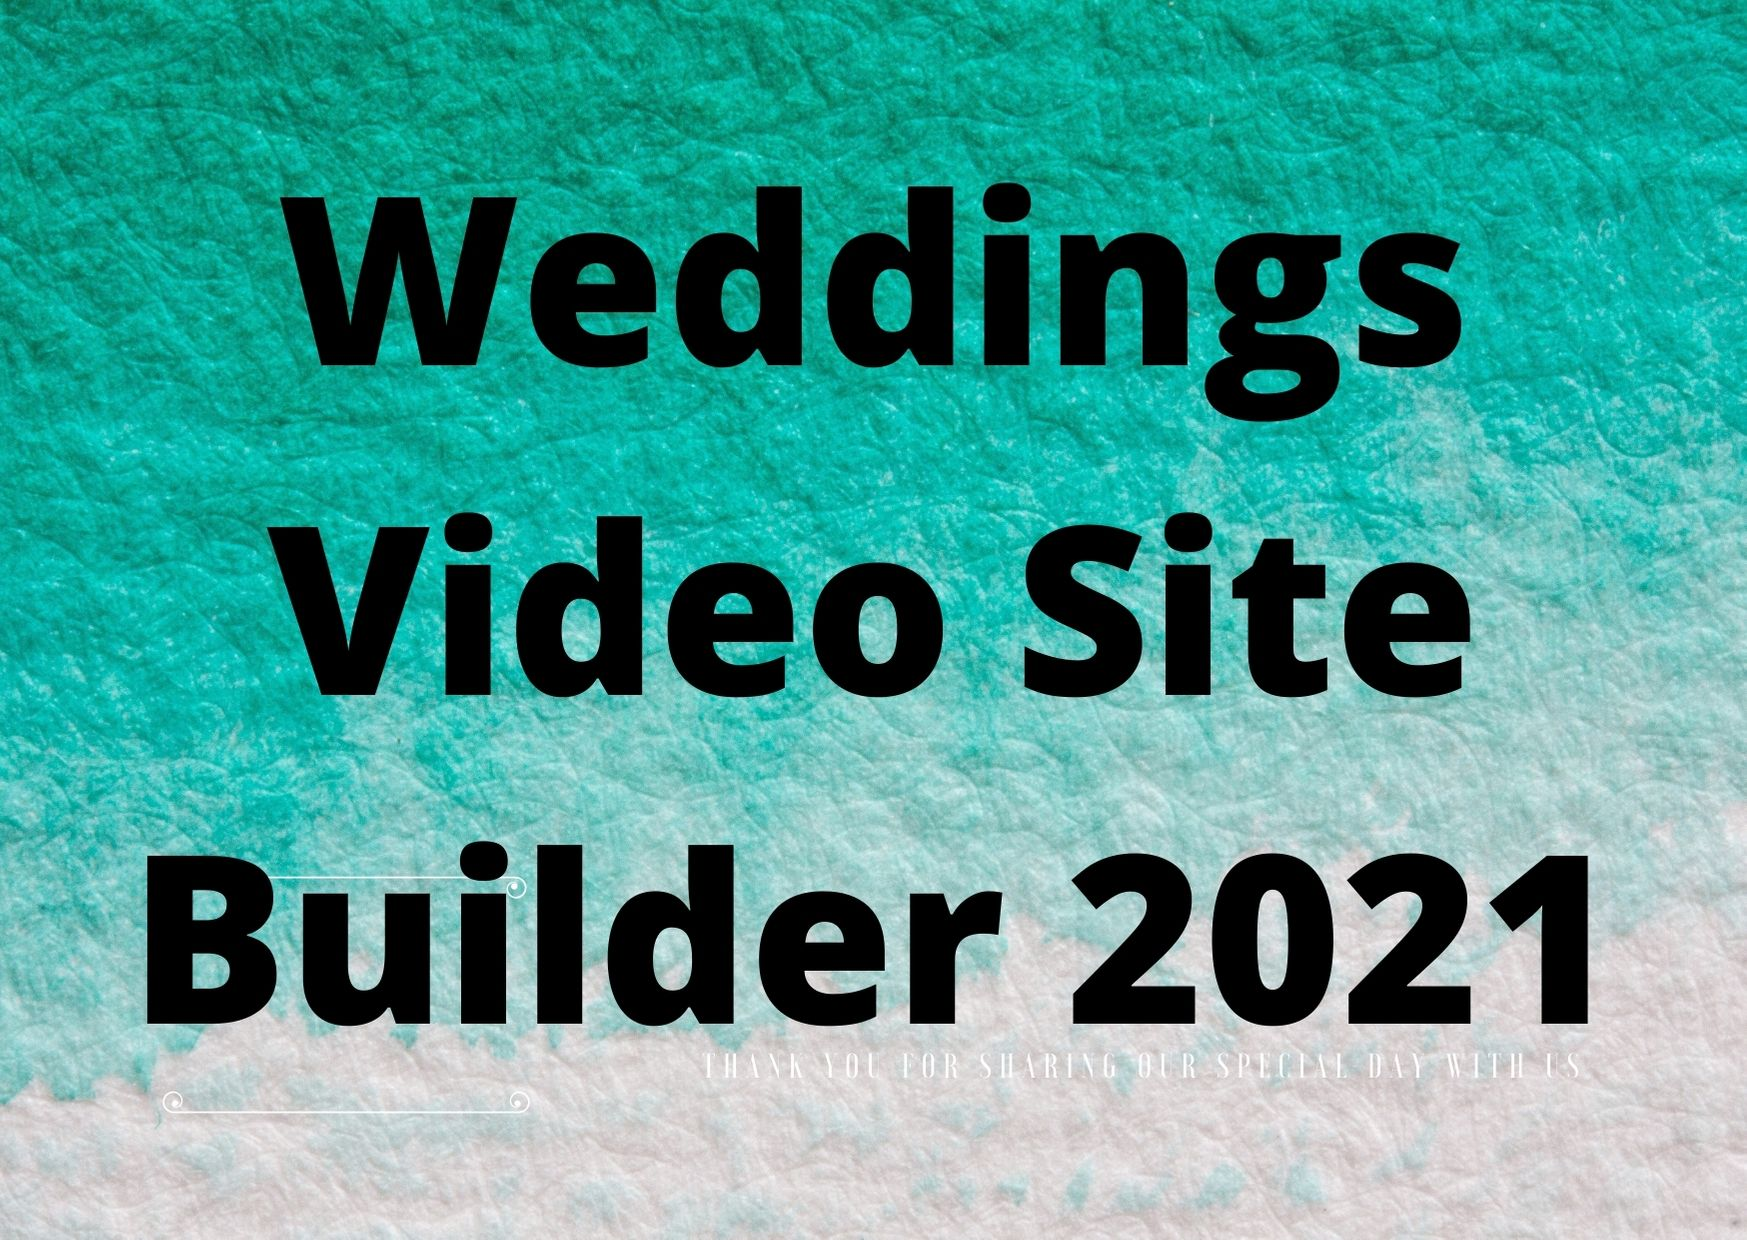 Weddings Video Site Builder 2021